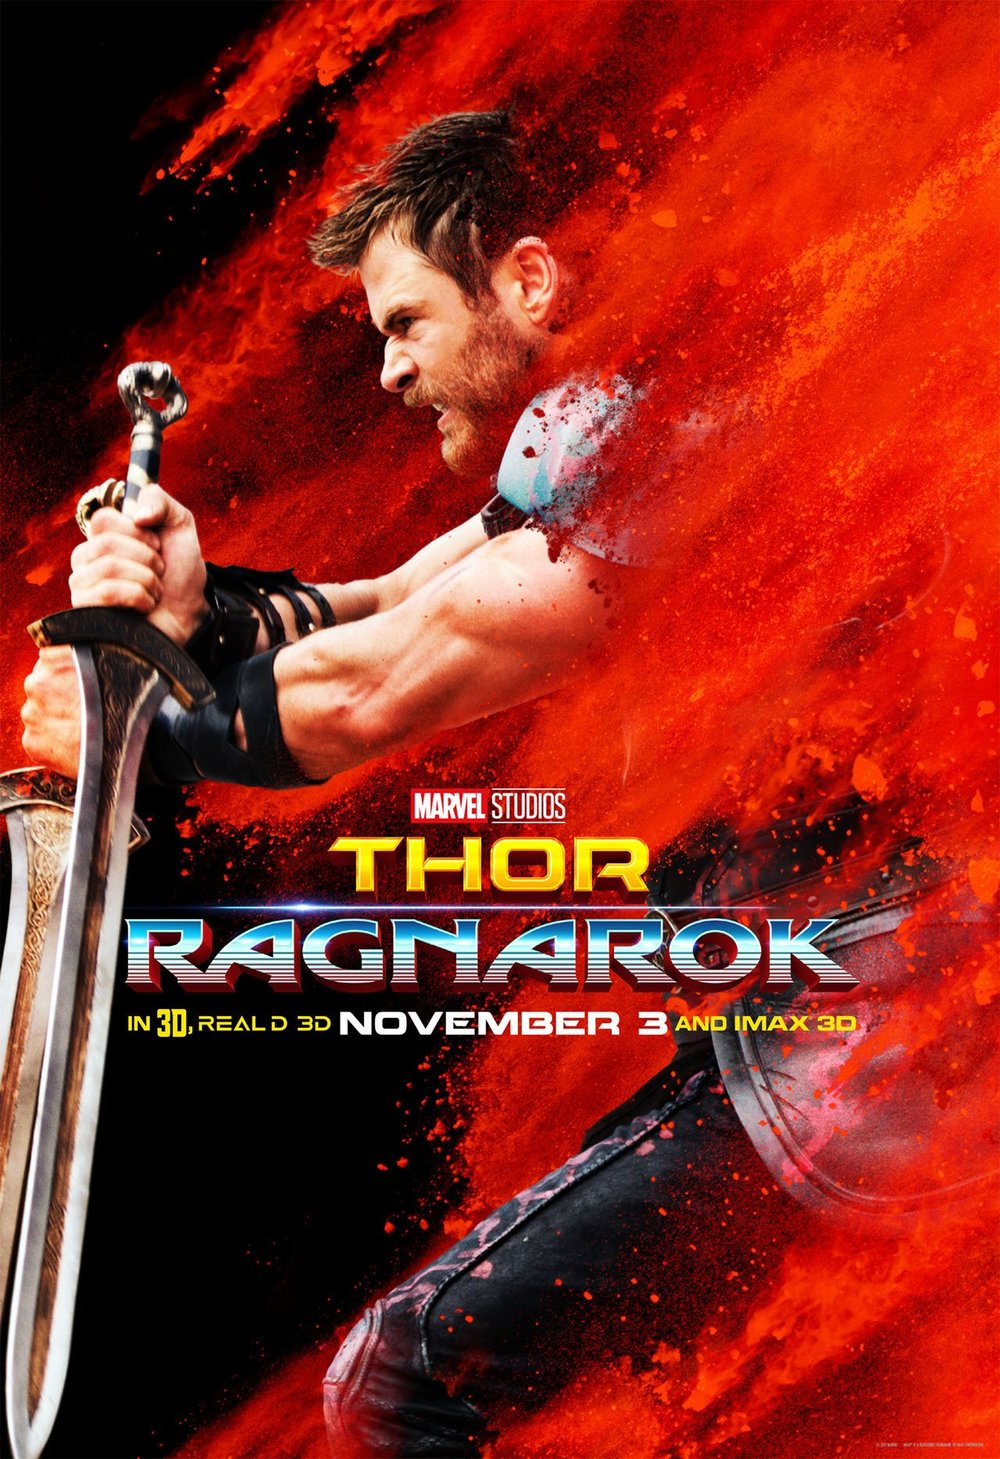 8-wild-thor-ragnarok-character-posters-give-the-heroes-and-villains-an-explosion-of-color12.jpeg